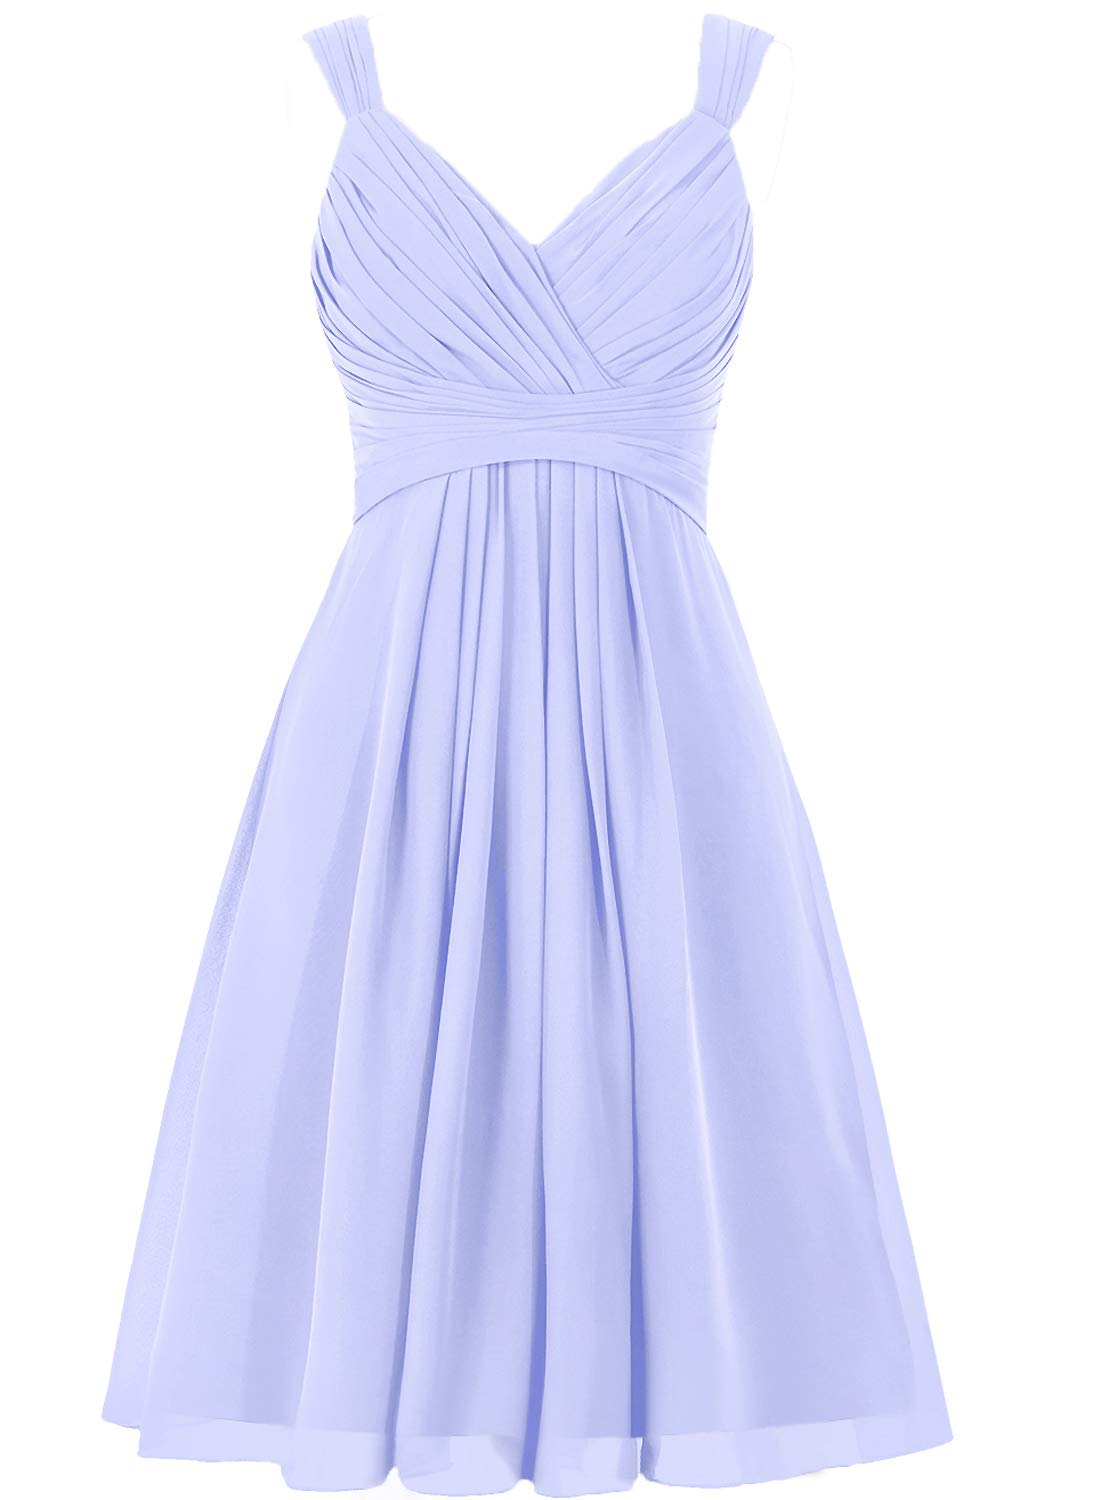 Available at Amazon: Bridesmaid Dress Short Prom Dress Chiffon Simple Party Dress for Junior